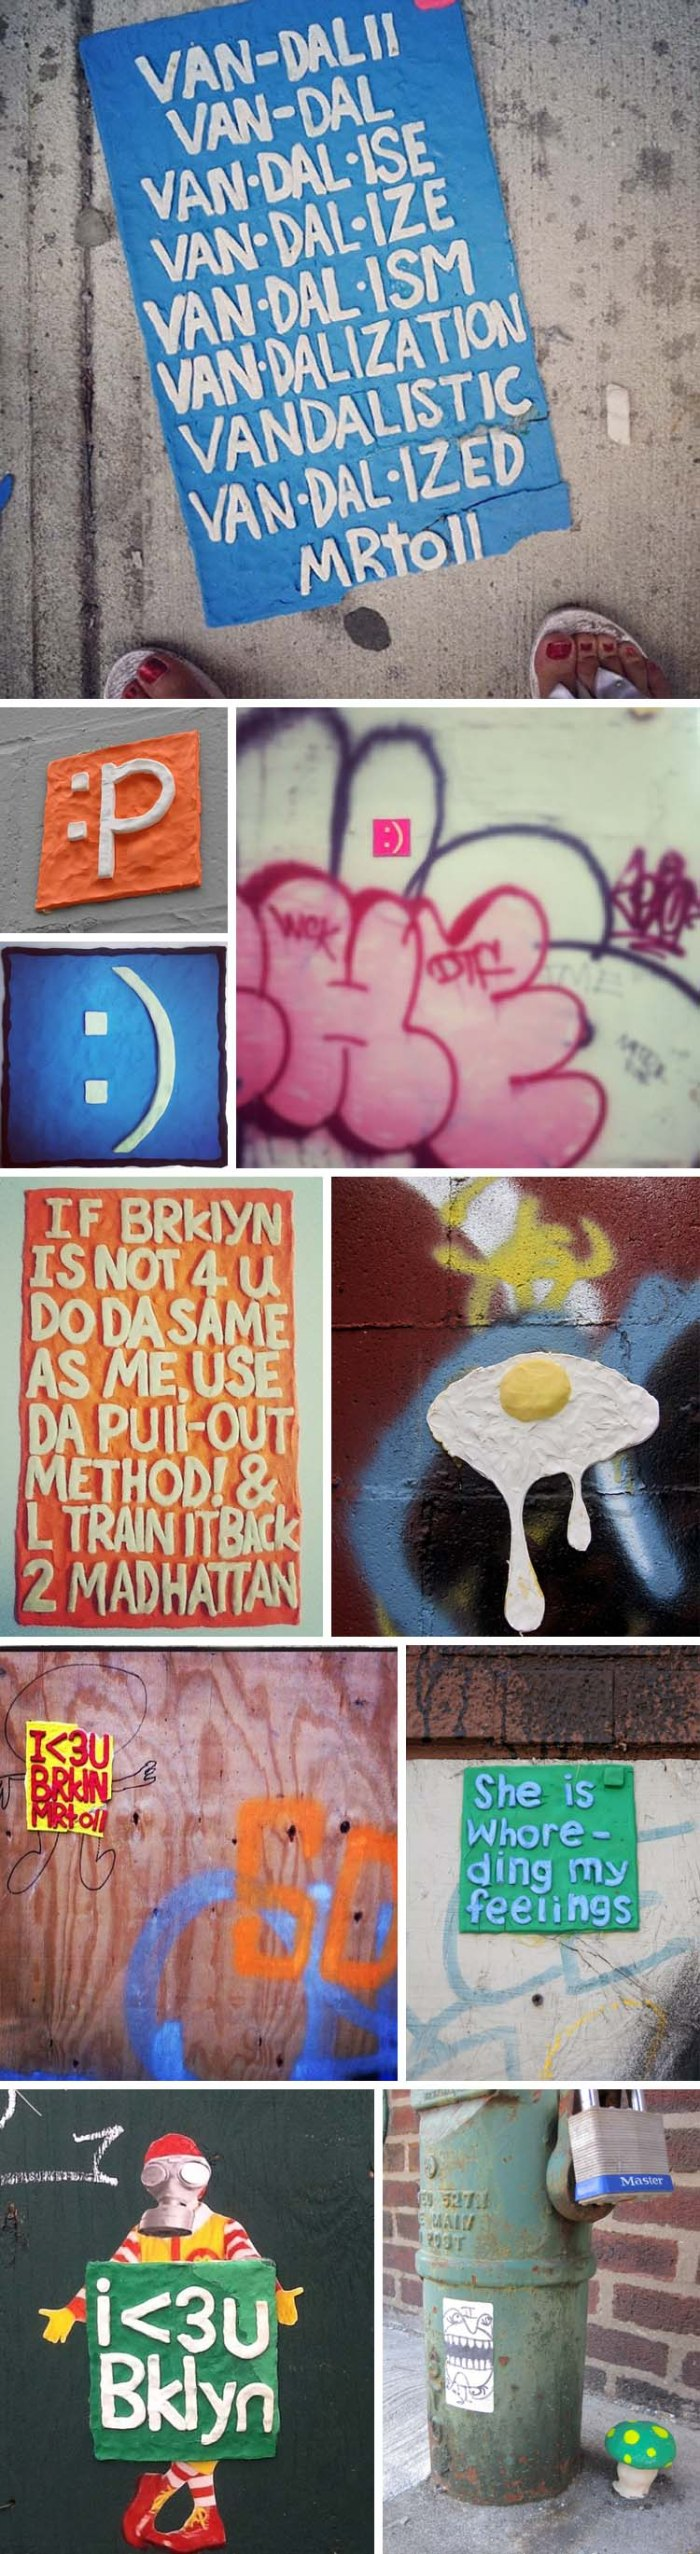 MrToll, Brooklyn street art made out of clay, clay sculpture and poetry street art by Mr.Toll, Graffiti